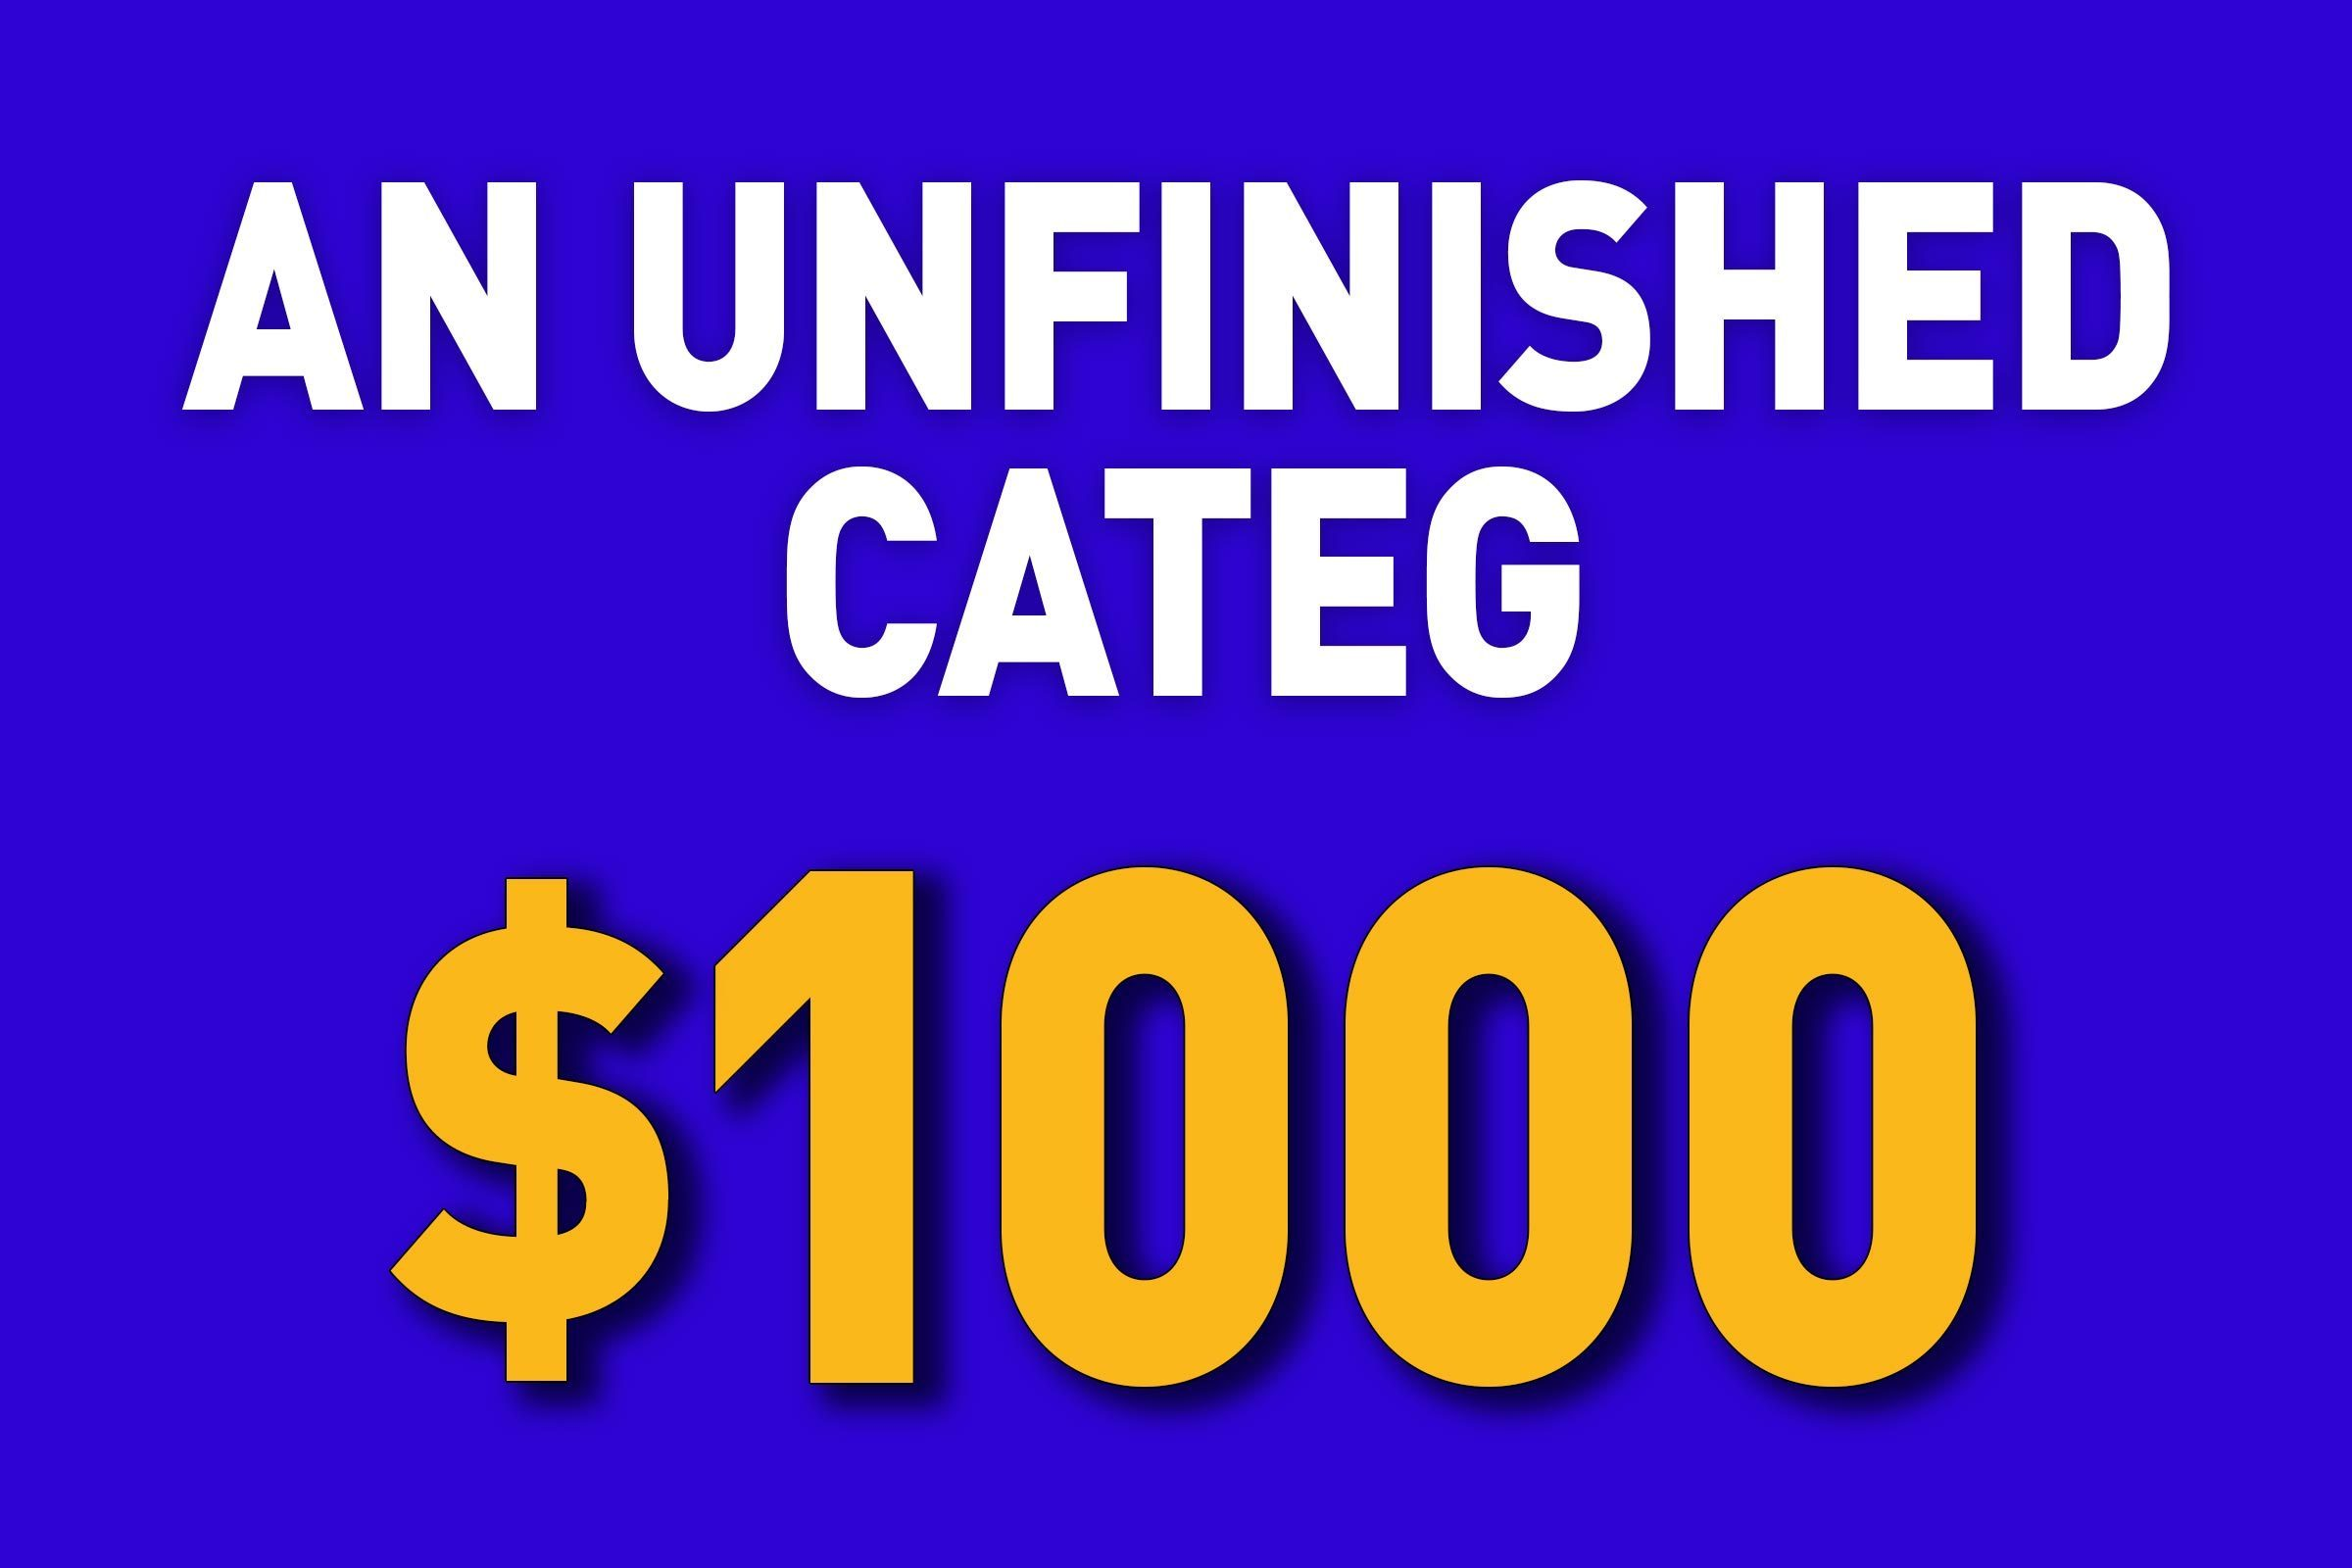 An Unfinished Categ for $1000